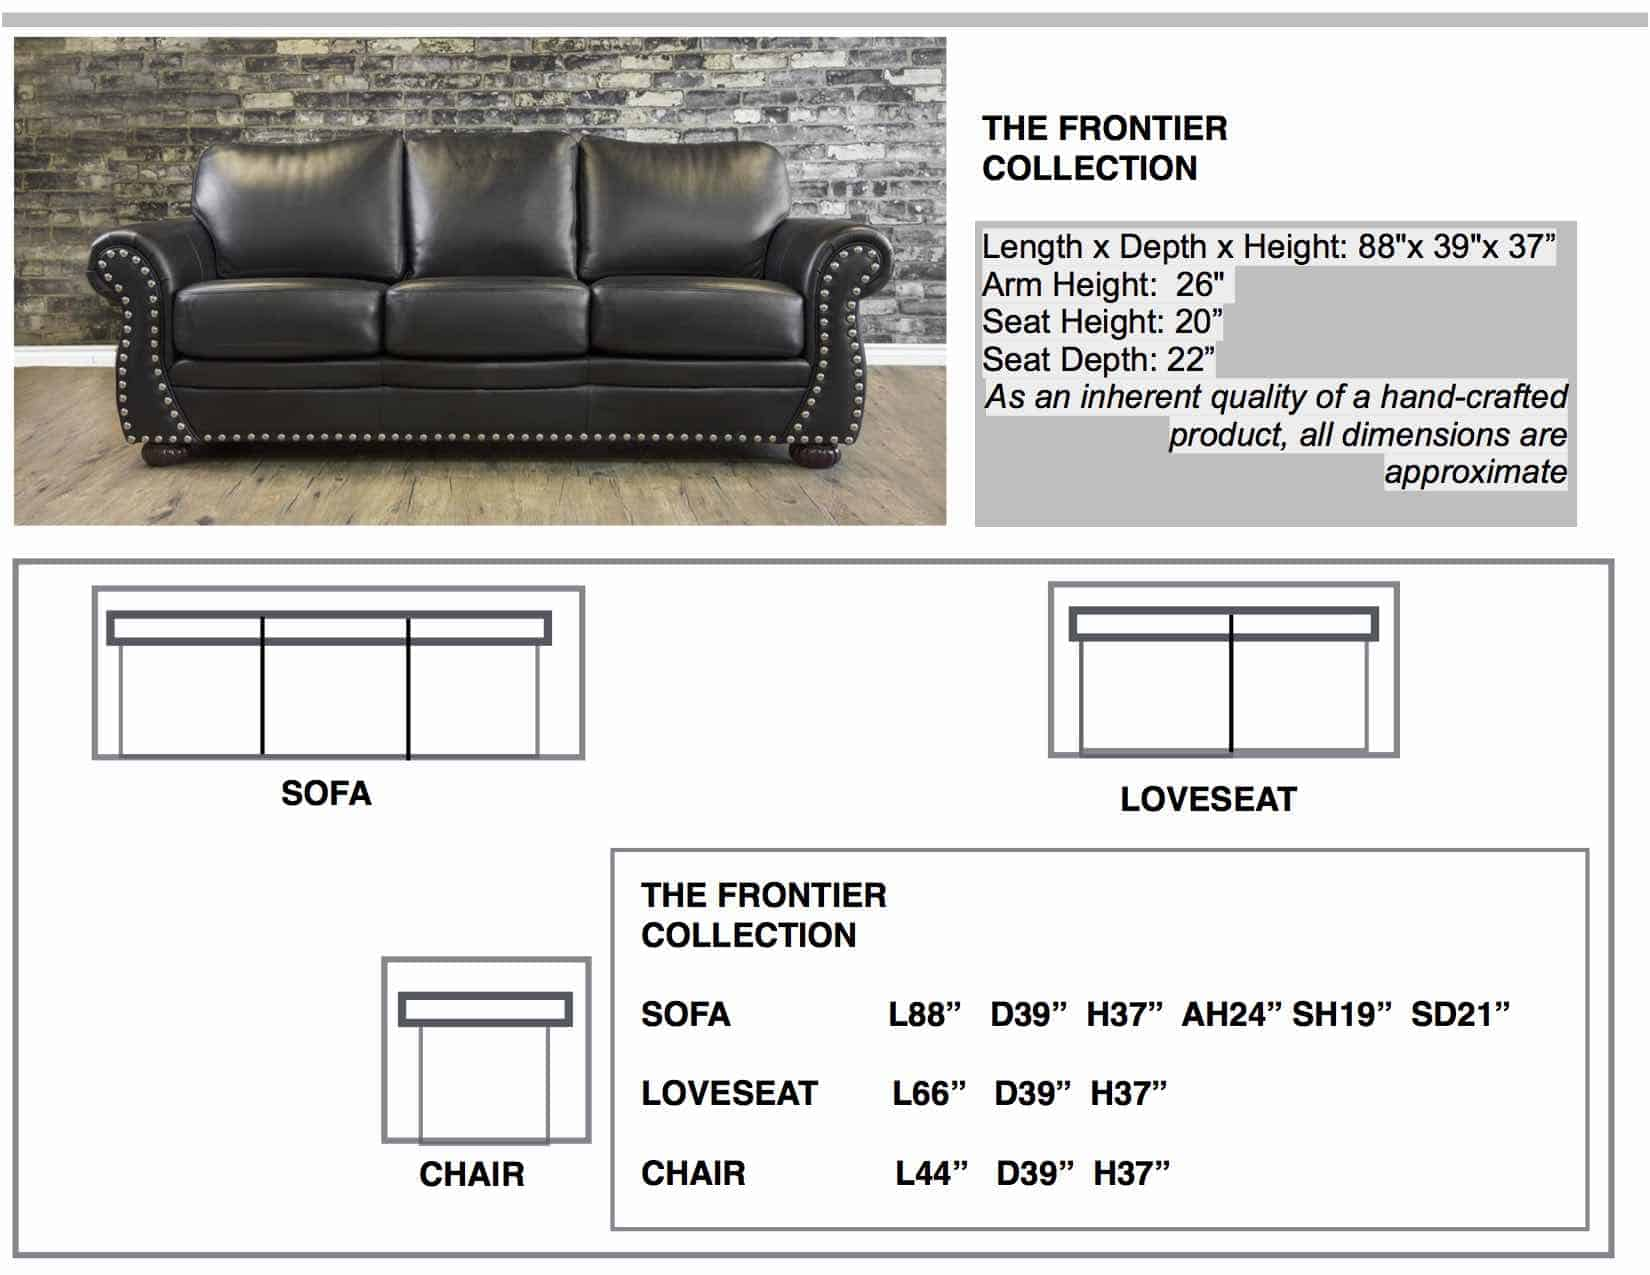 leather sofas THE FRONTIER sizes